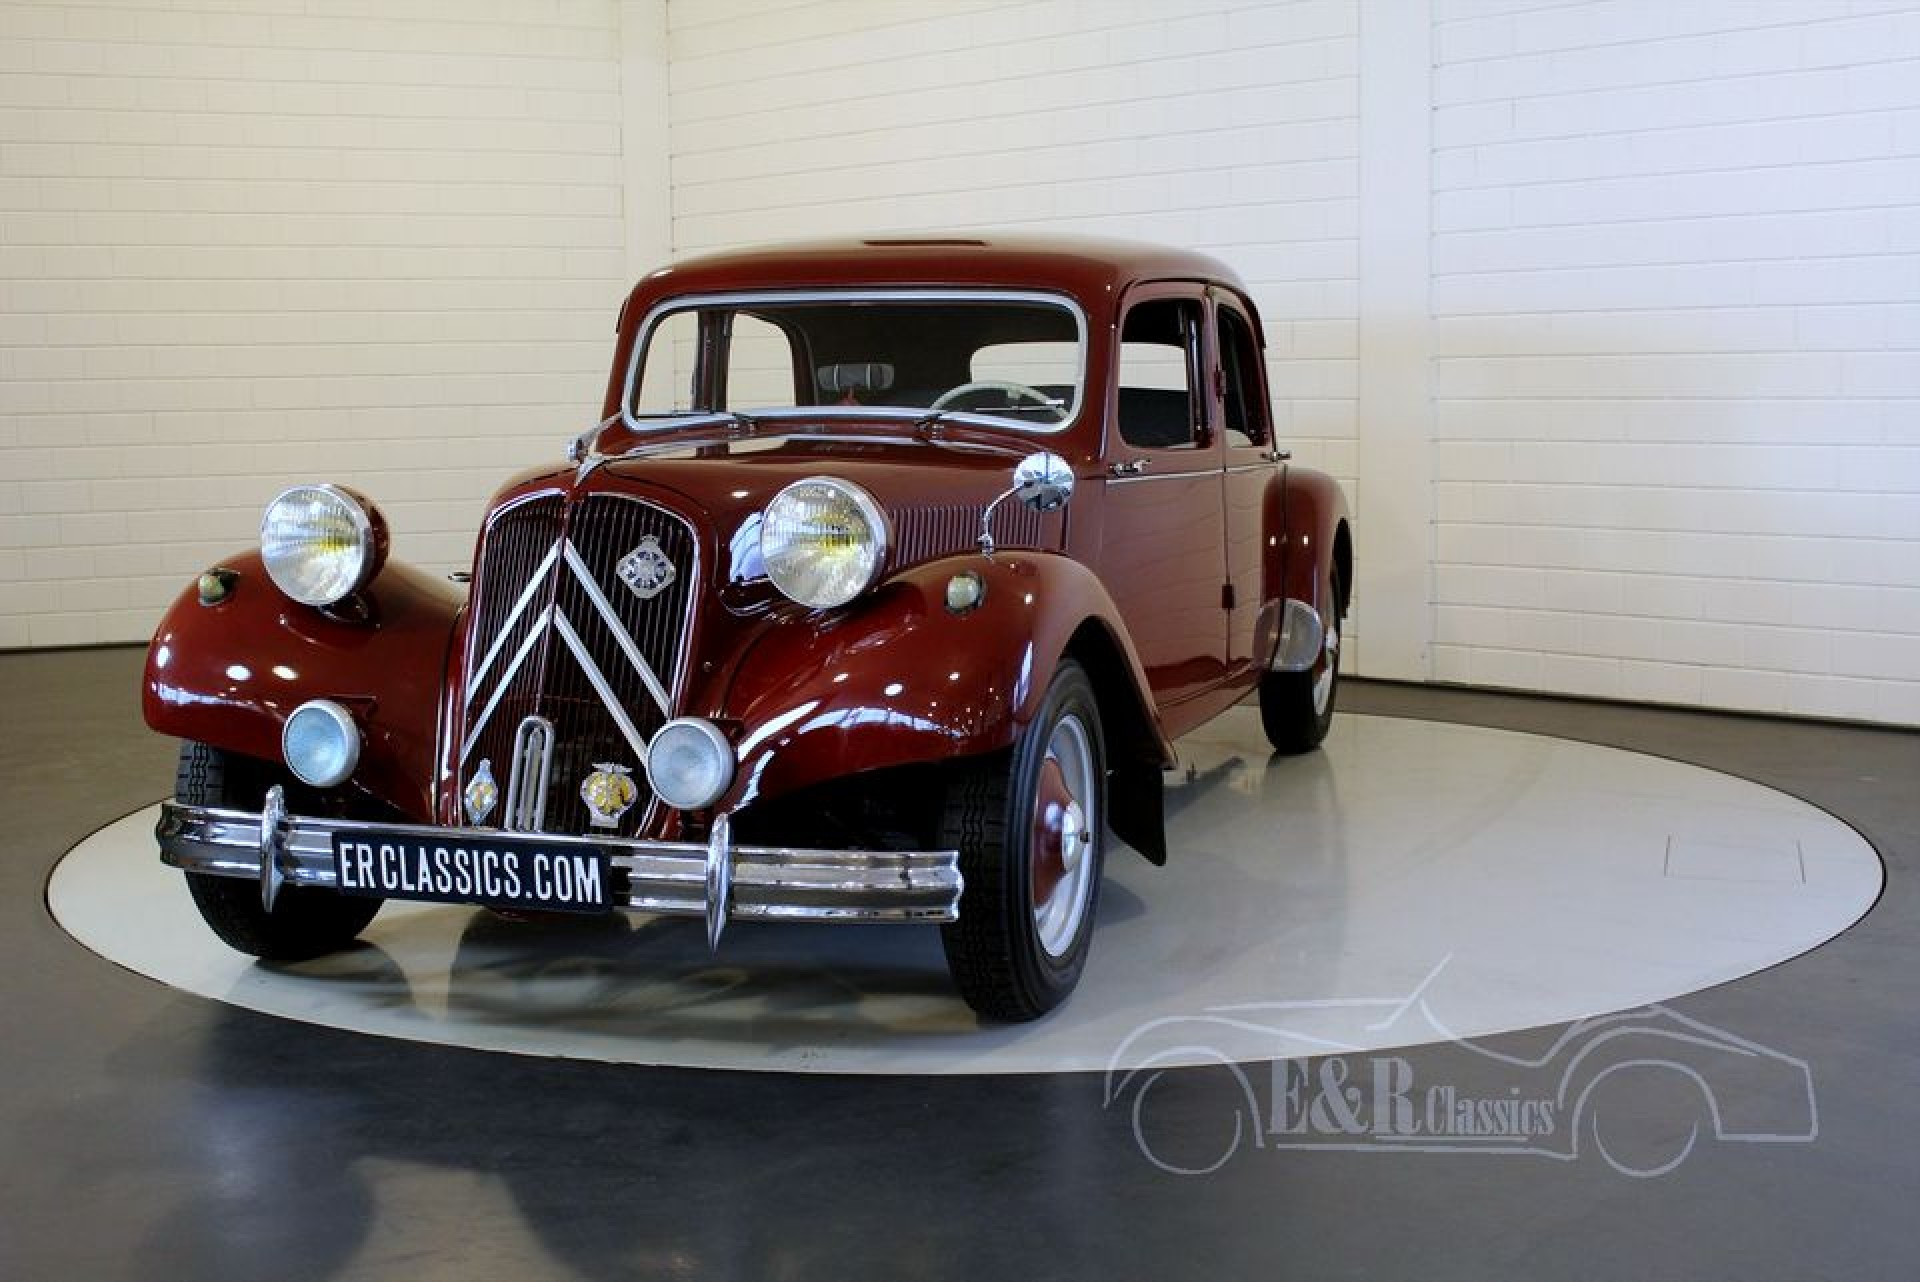 citroen traction avant 11cv 1953 vendre erclassics. Black Bedroom Furniture Sets. Home Design Ideas